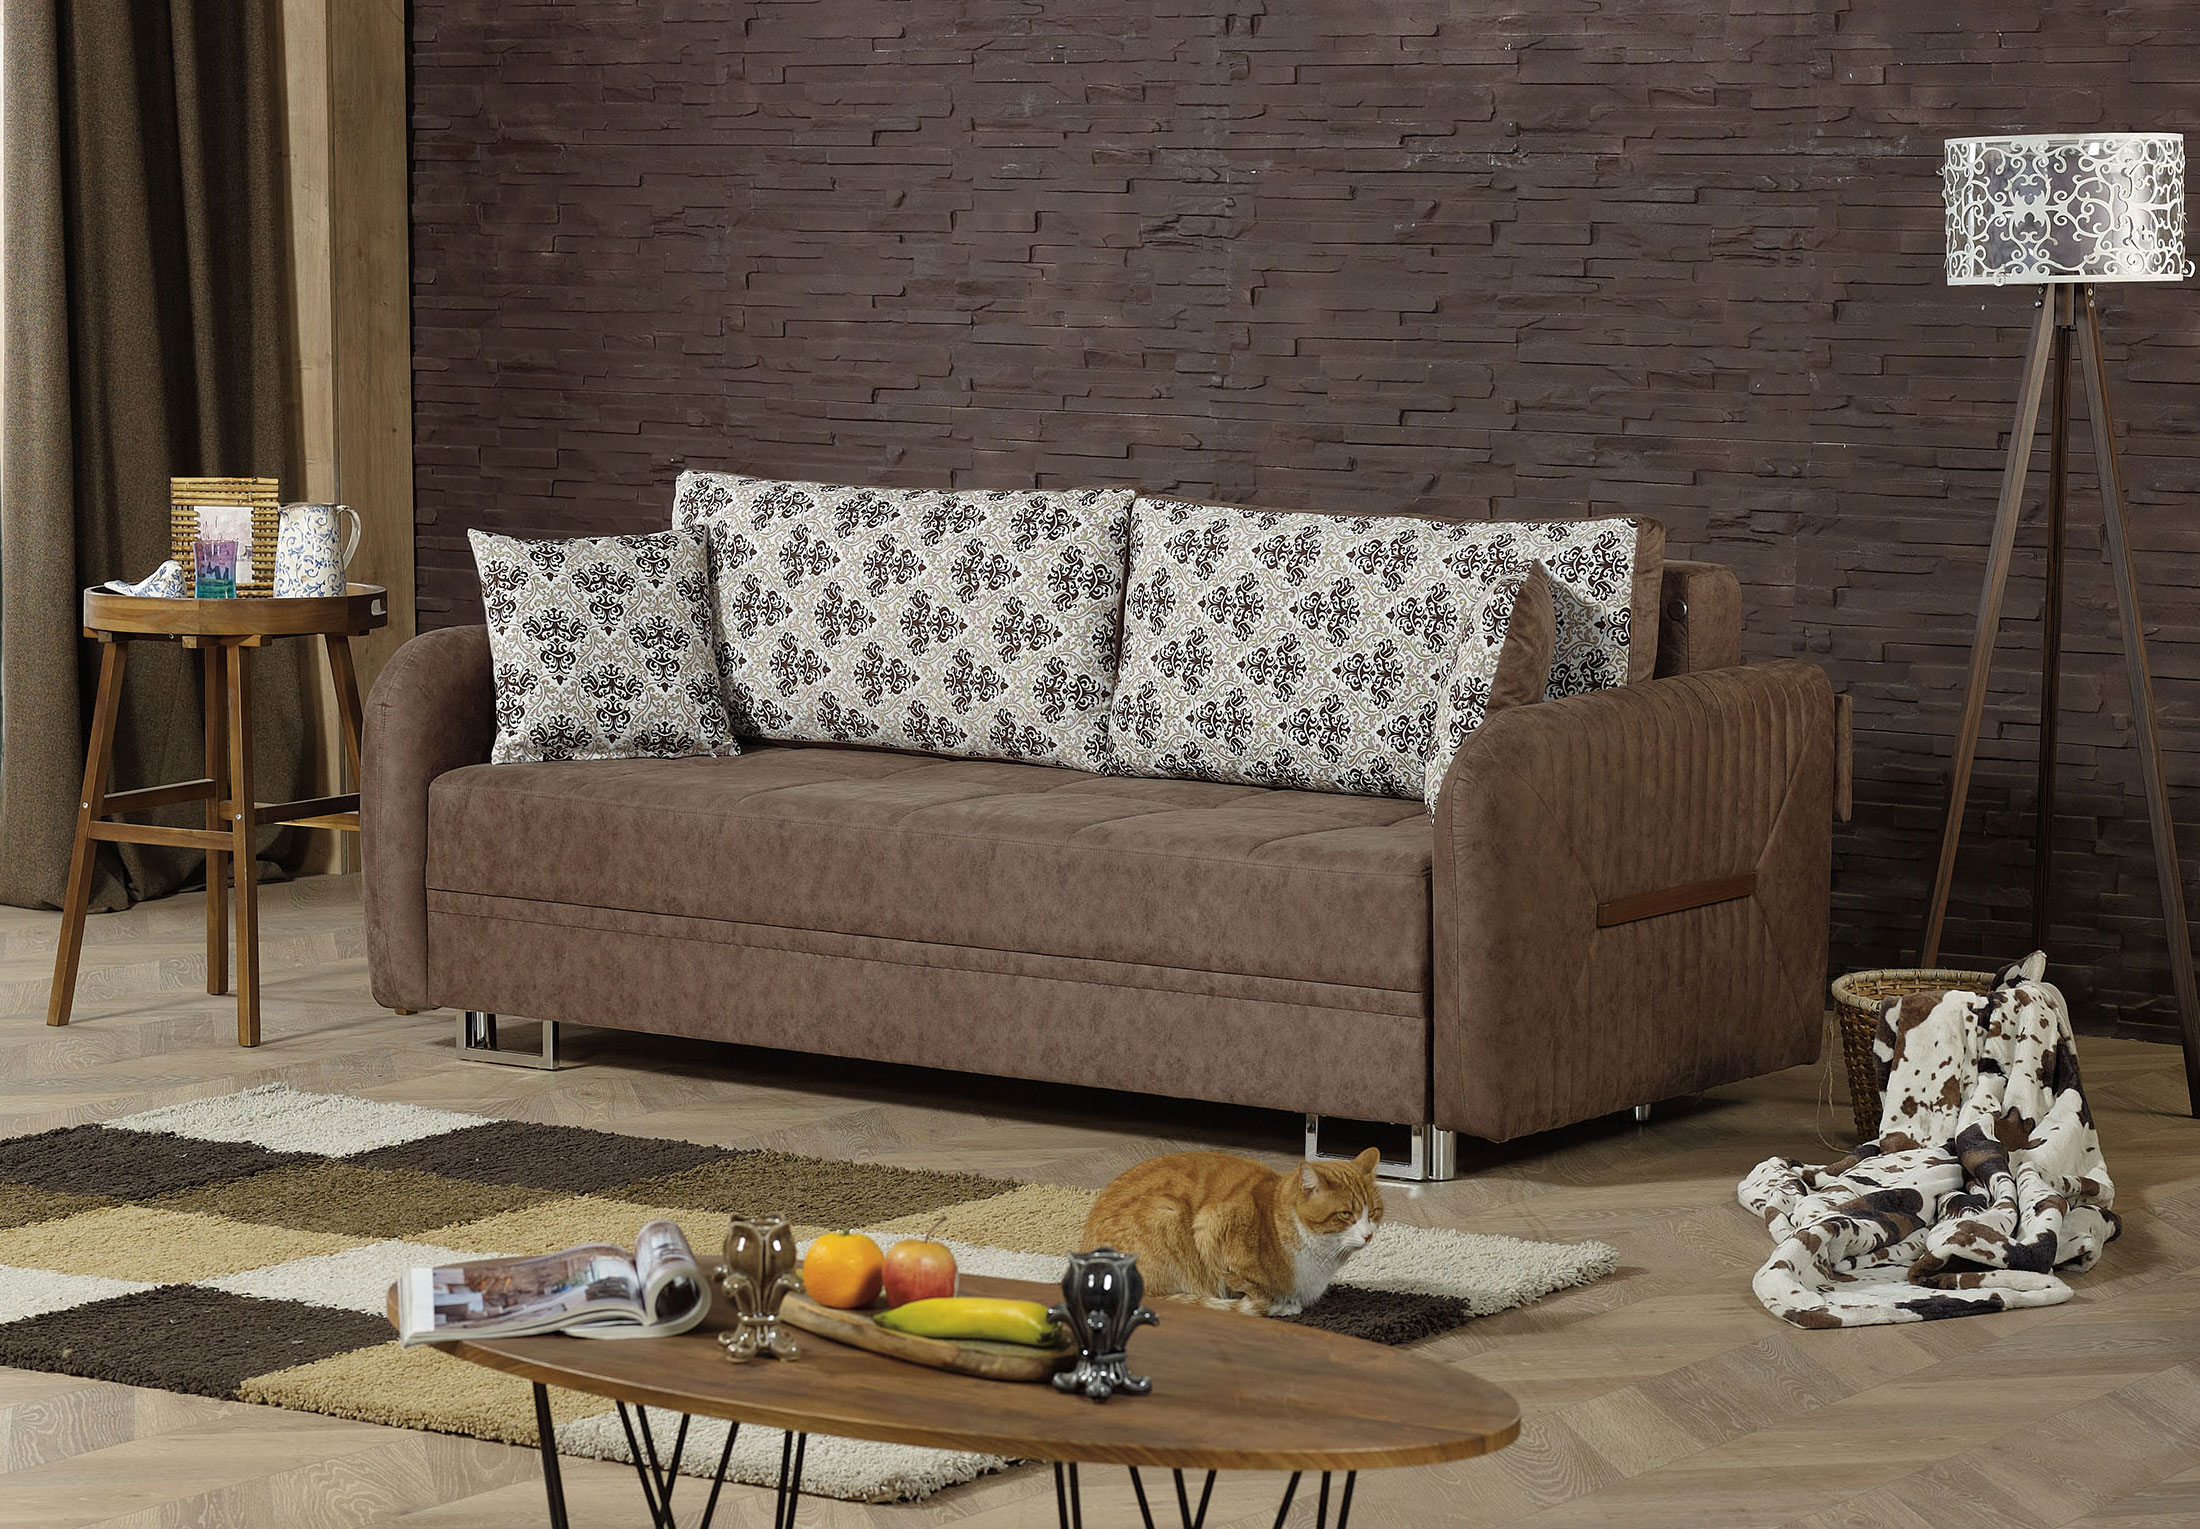 Miraculous Barcelona Brown Convertible Sofa Bed By Casamode Evergreenethics Interior Chair Design Evergreenethicsorg